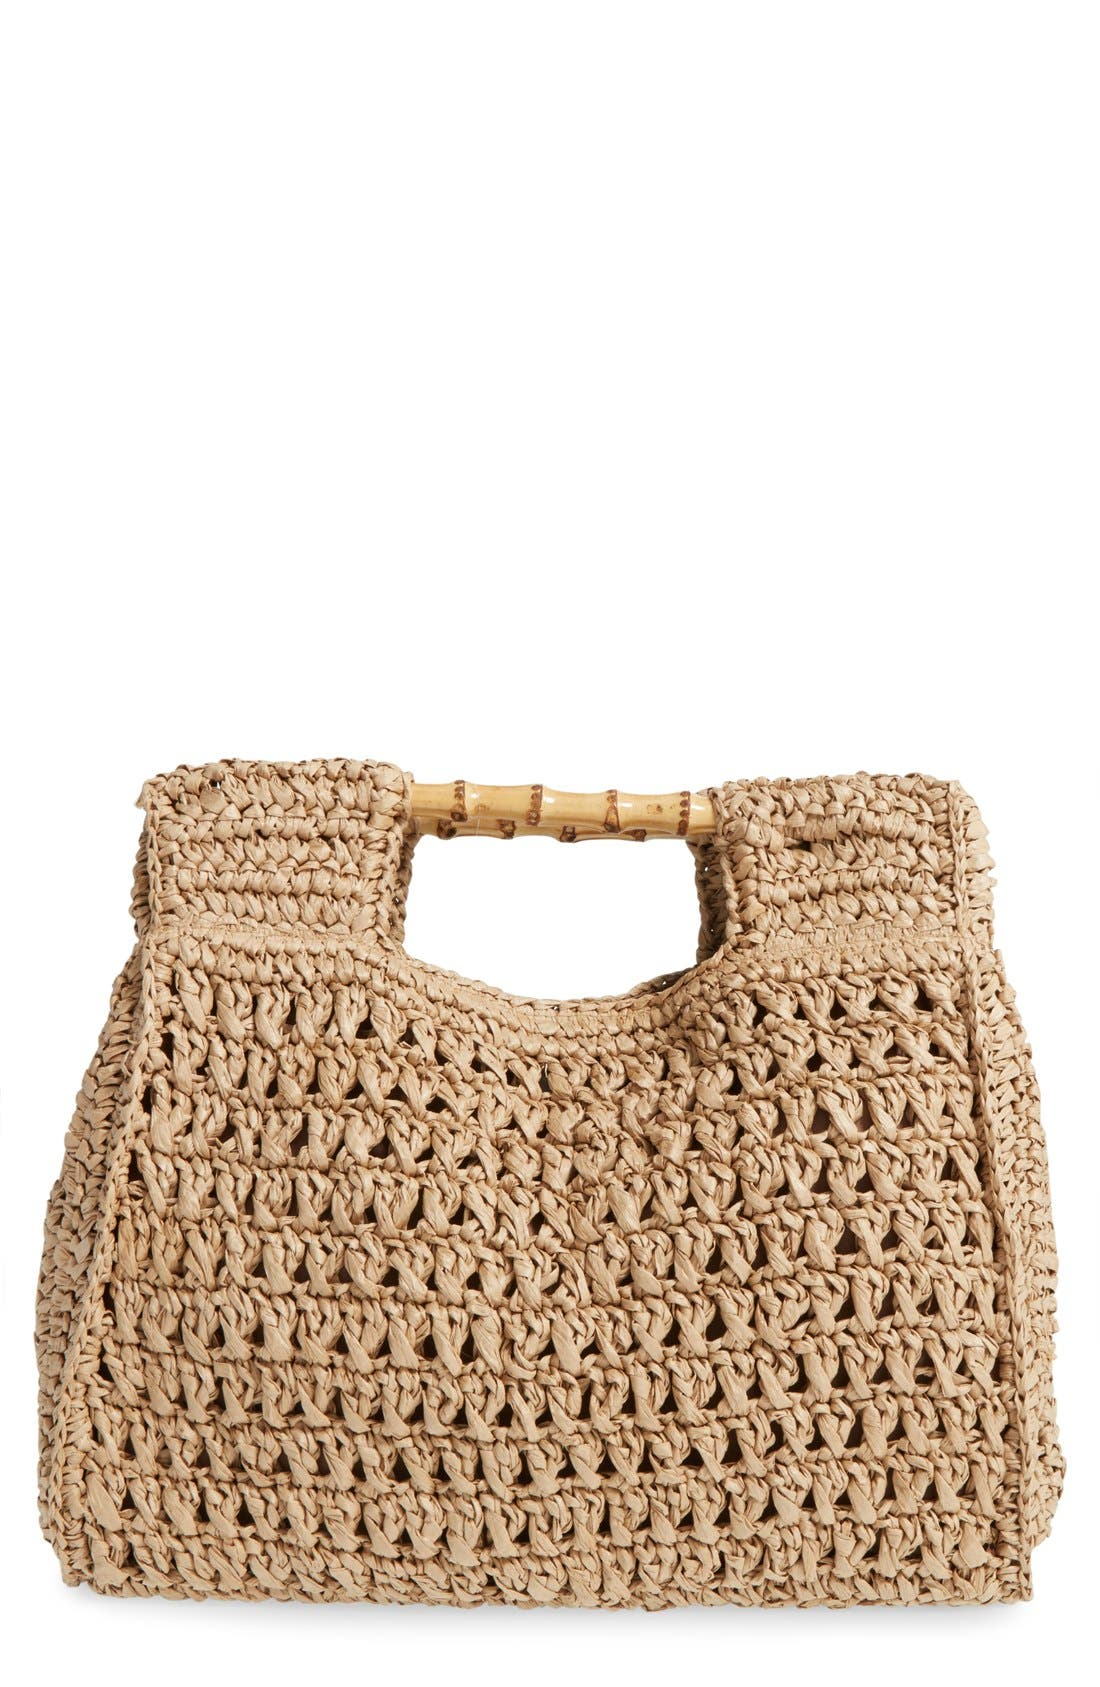 SAN DIEGO HAT Woven Straw Tote, Main, color, 250